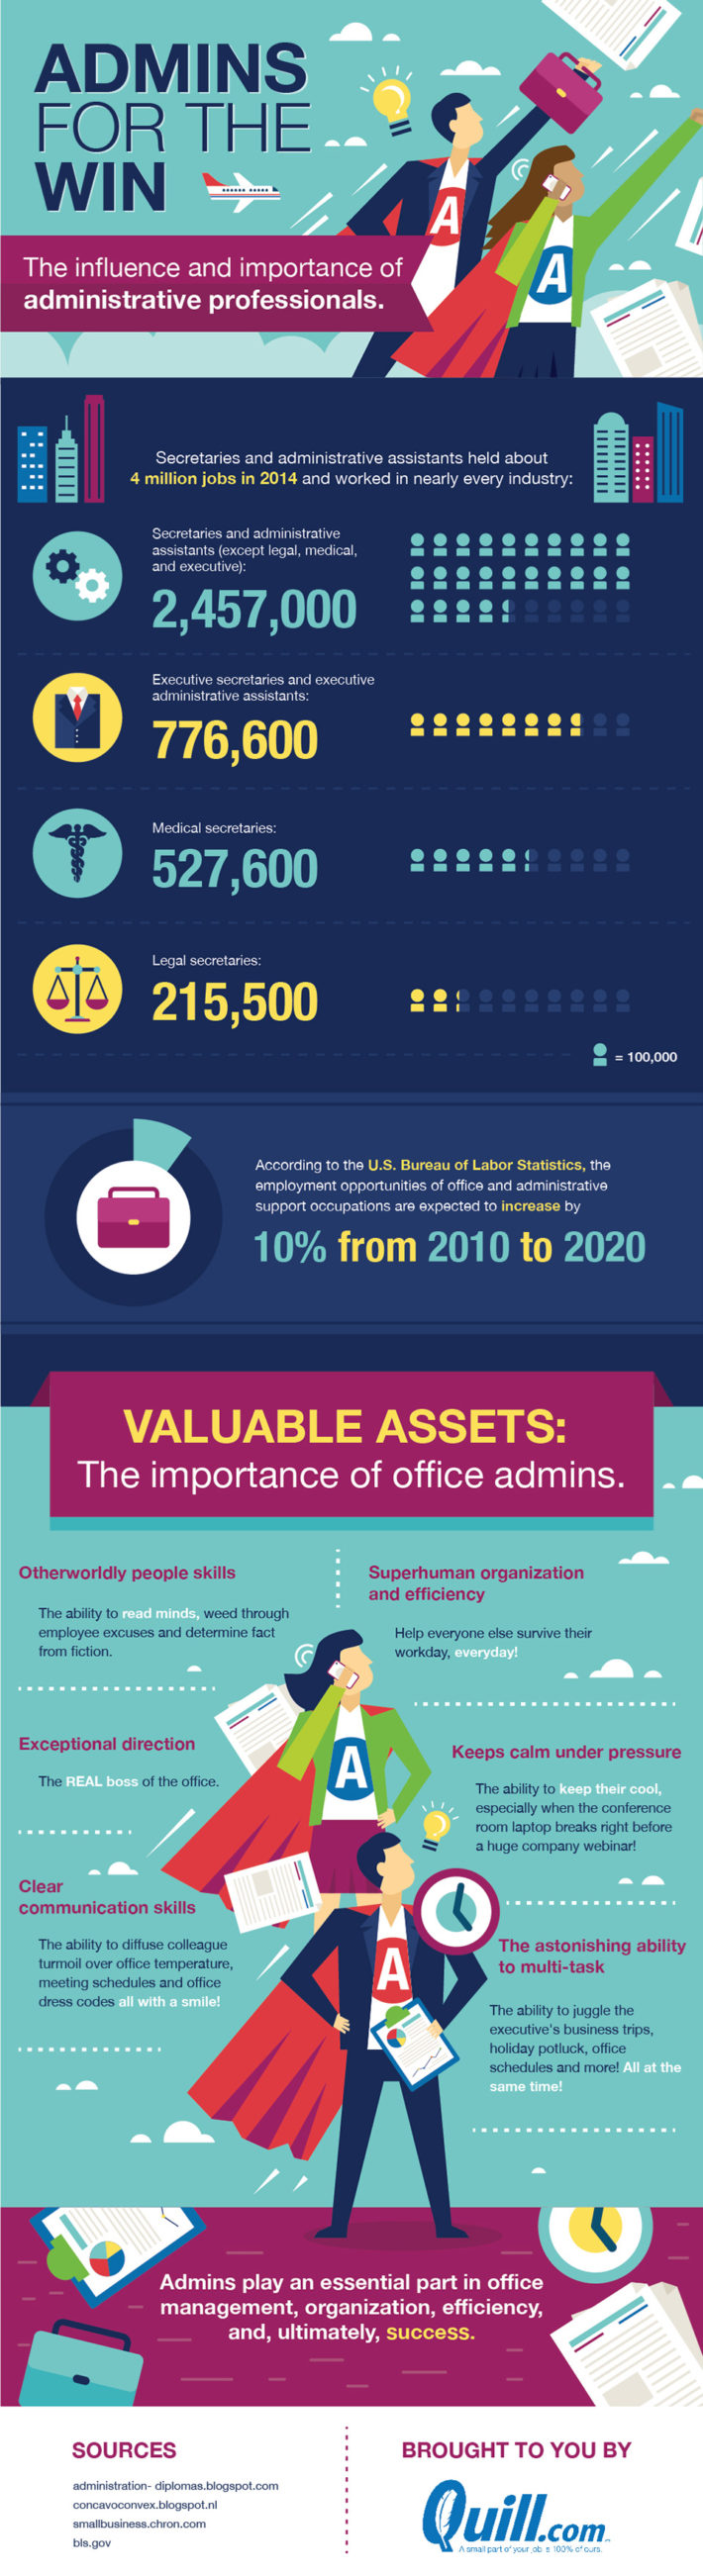 The influence and importance of administrative professionals